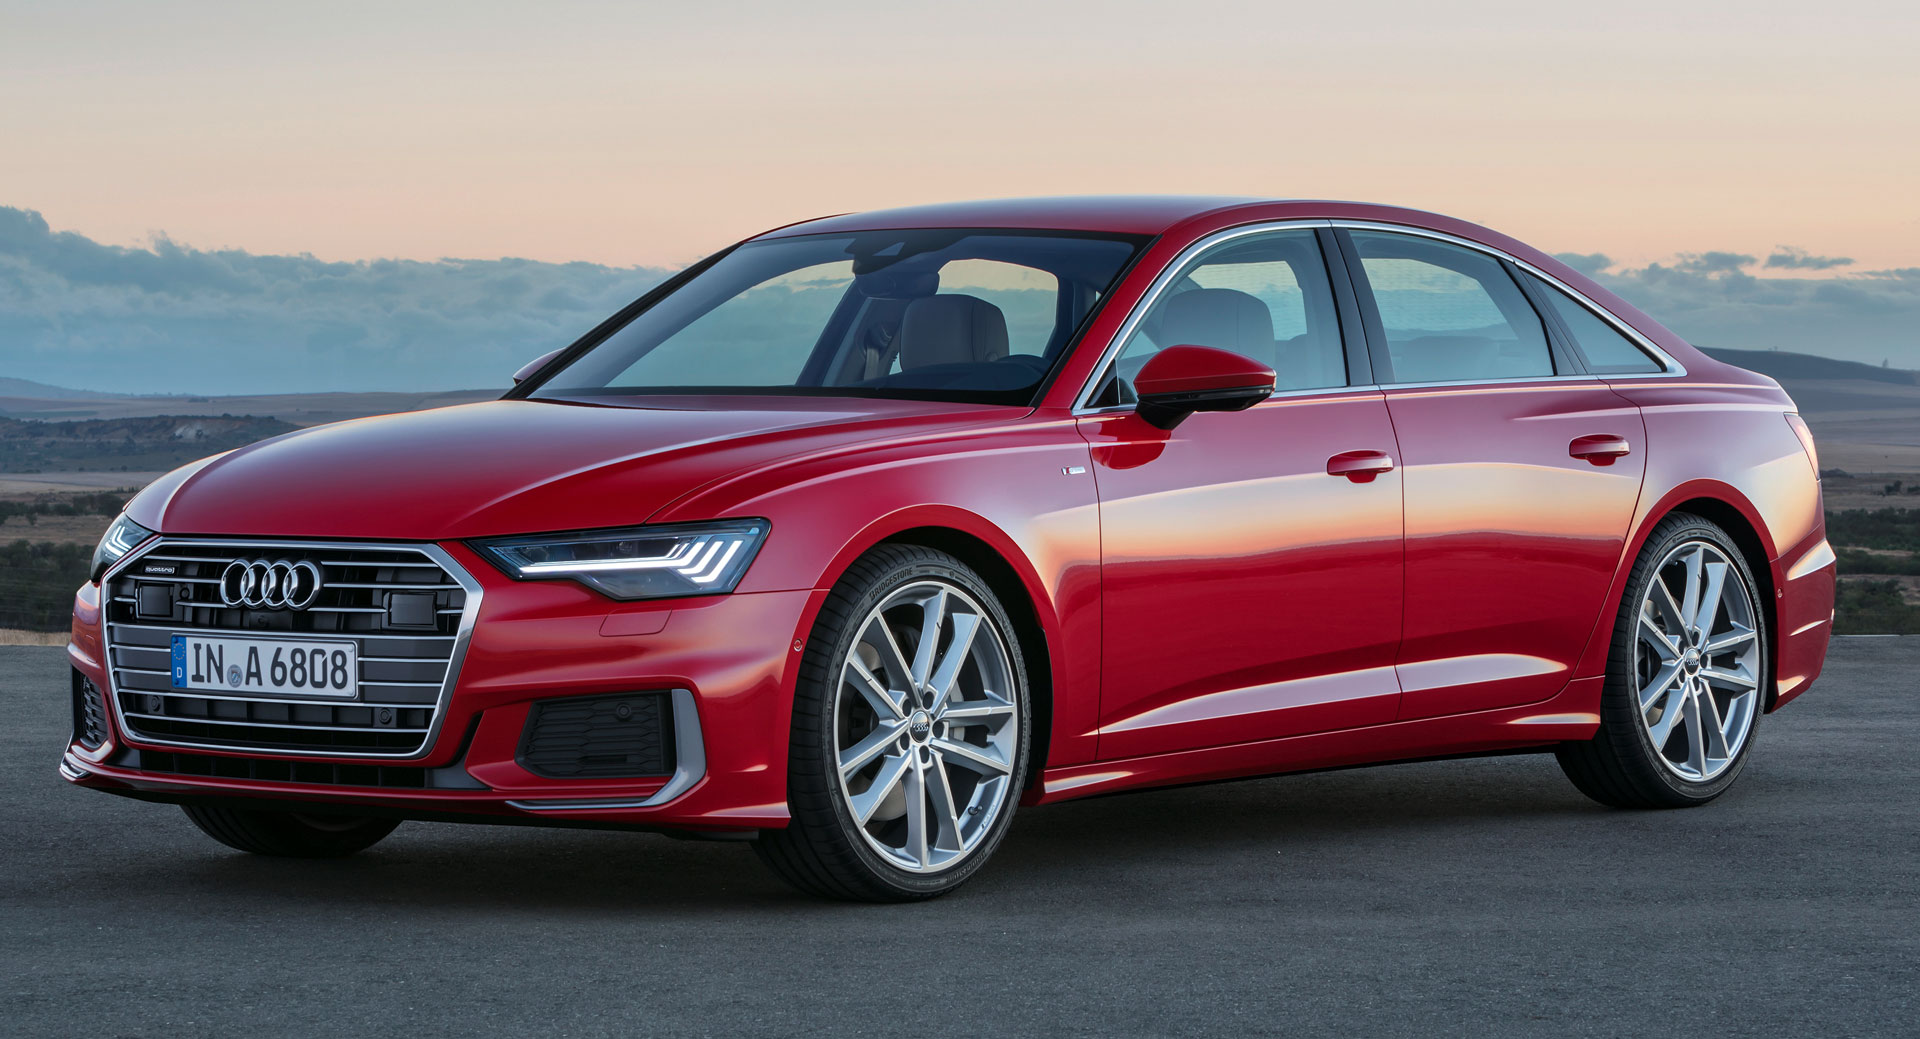 2019 audi a6 revealed look close and you might see an all new model carscoops. Black Bedroom Furniture Sets. Home Design Ideas